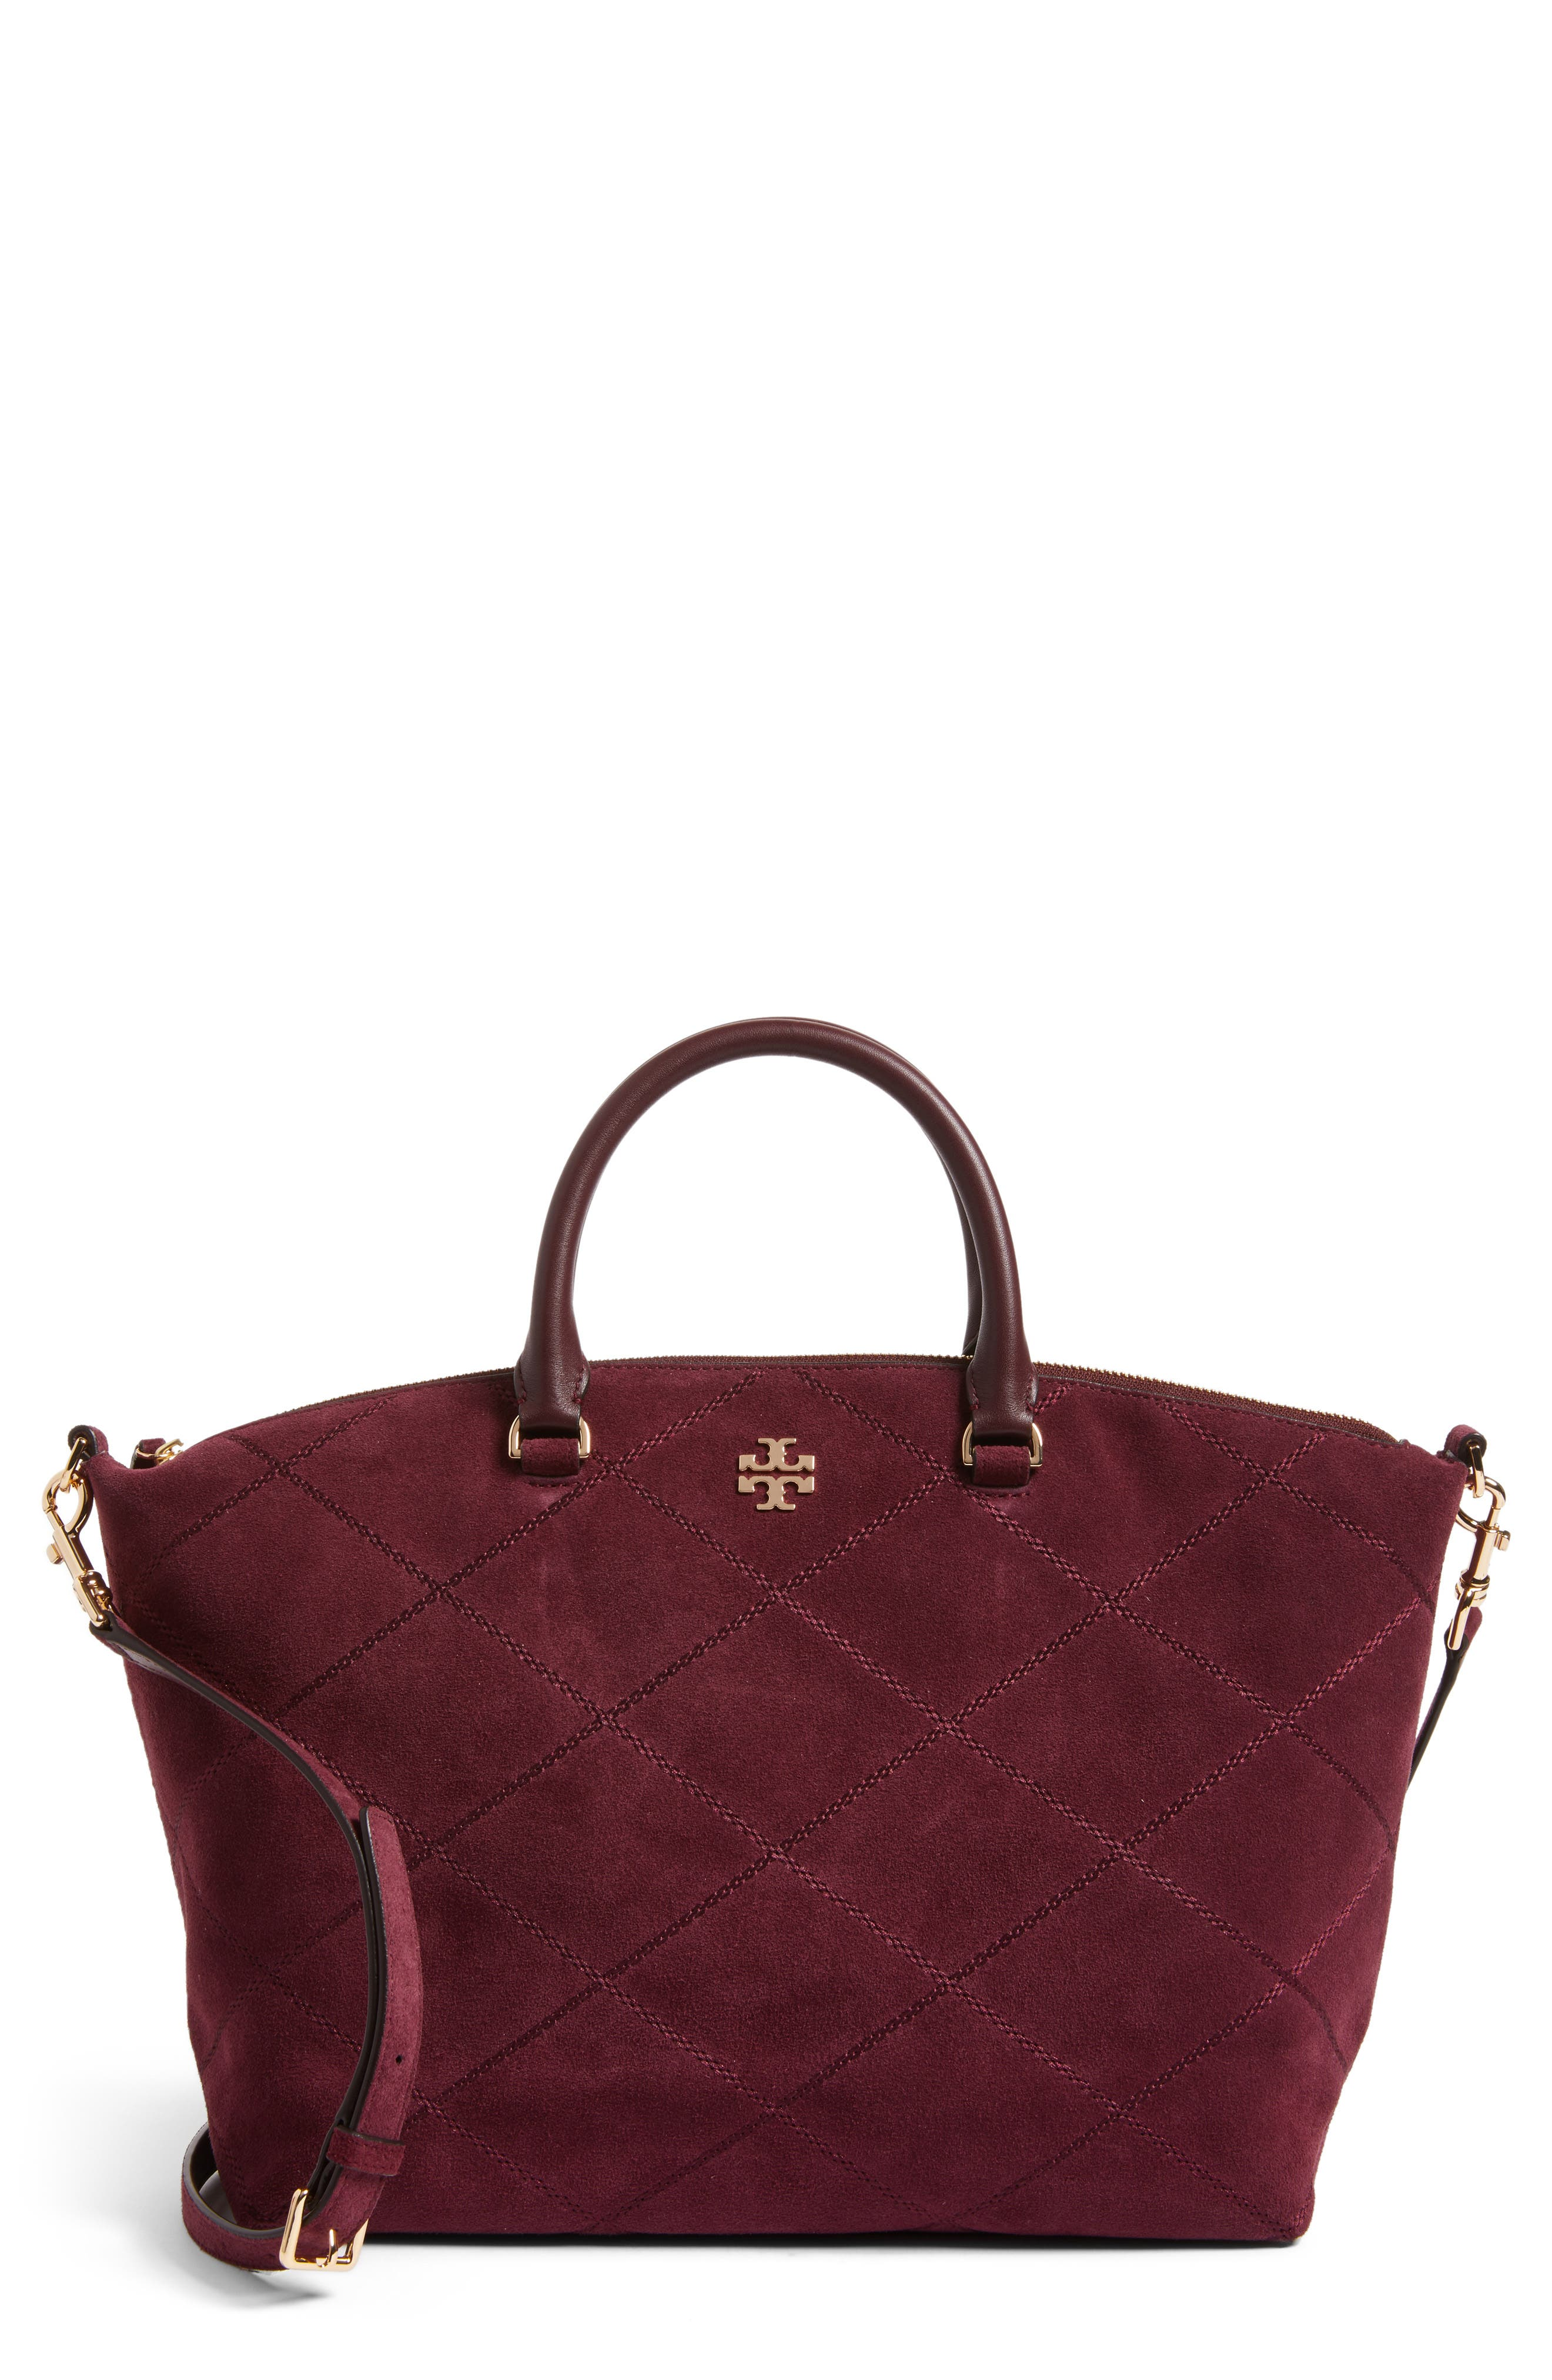 Alternate Image 1 Selected - Tory Burch Frida Stitched Suede Satchel (Nordstrom Exclusive)